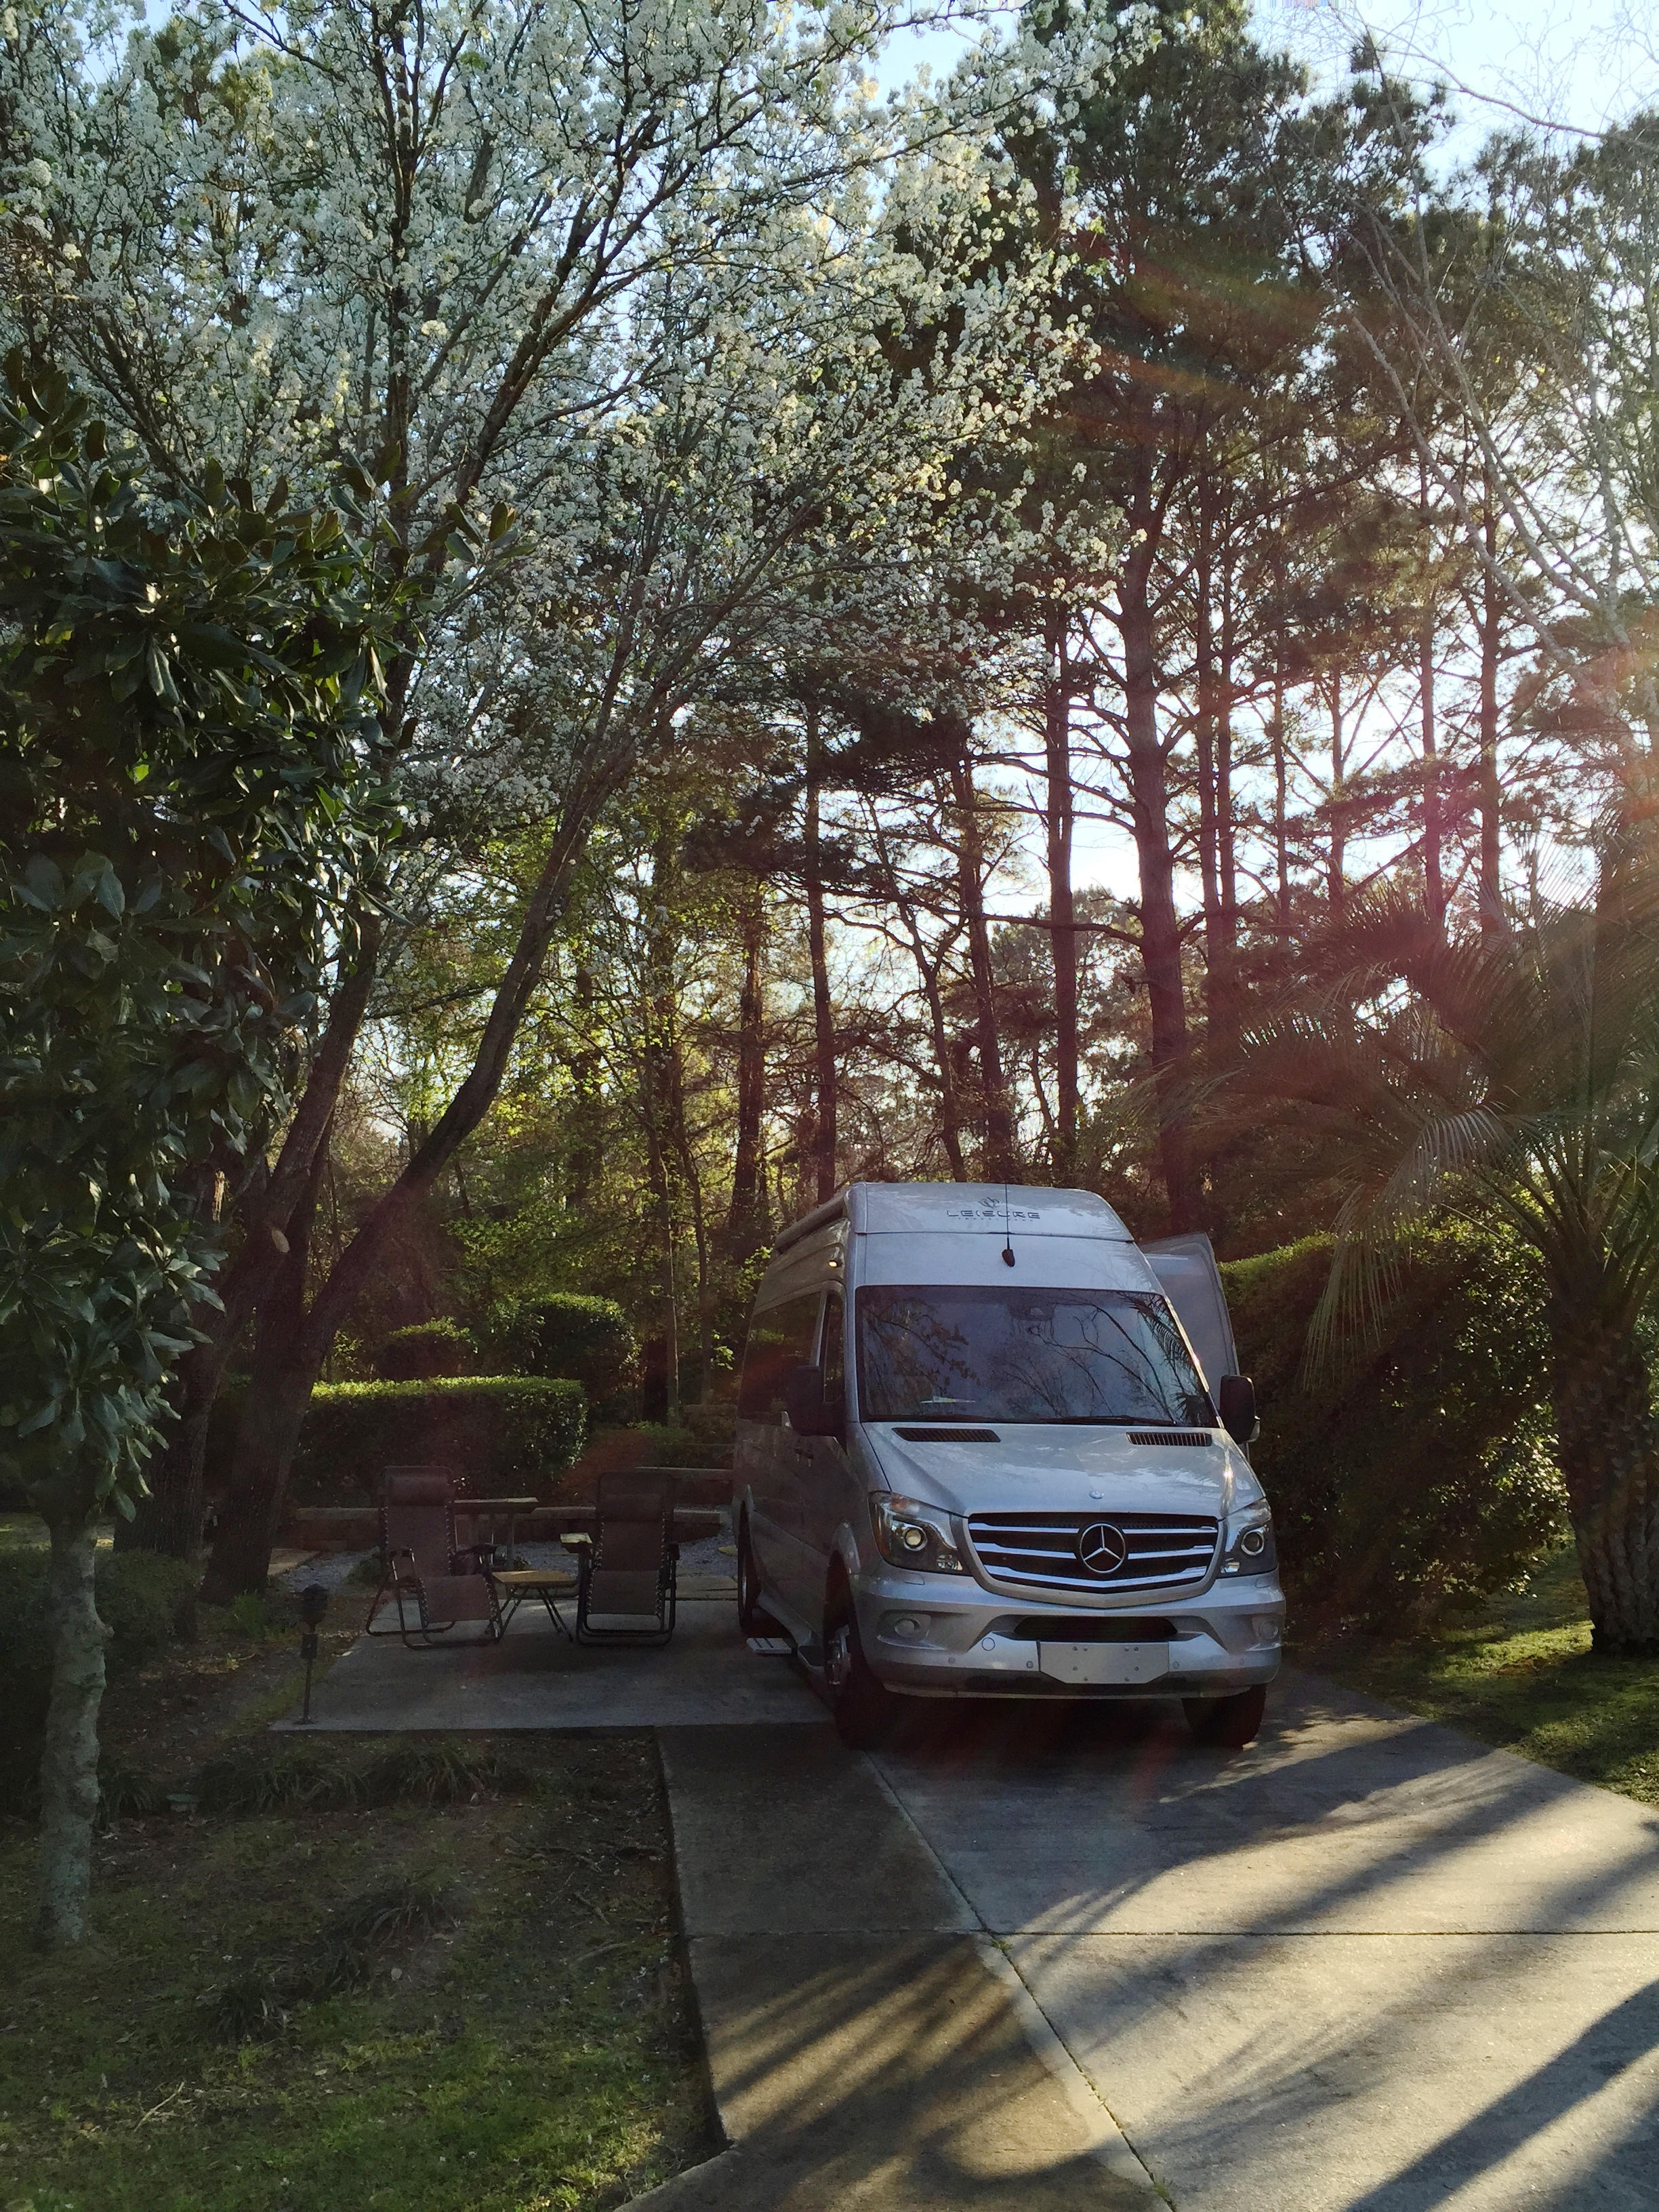 Our campsite on the north side of Hilton Head Island